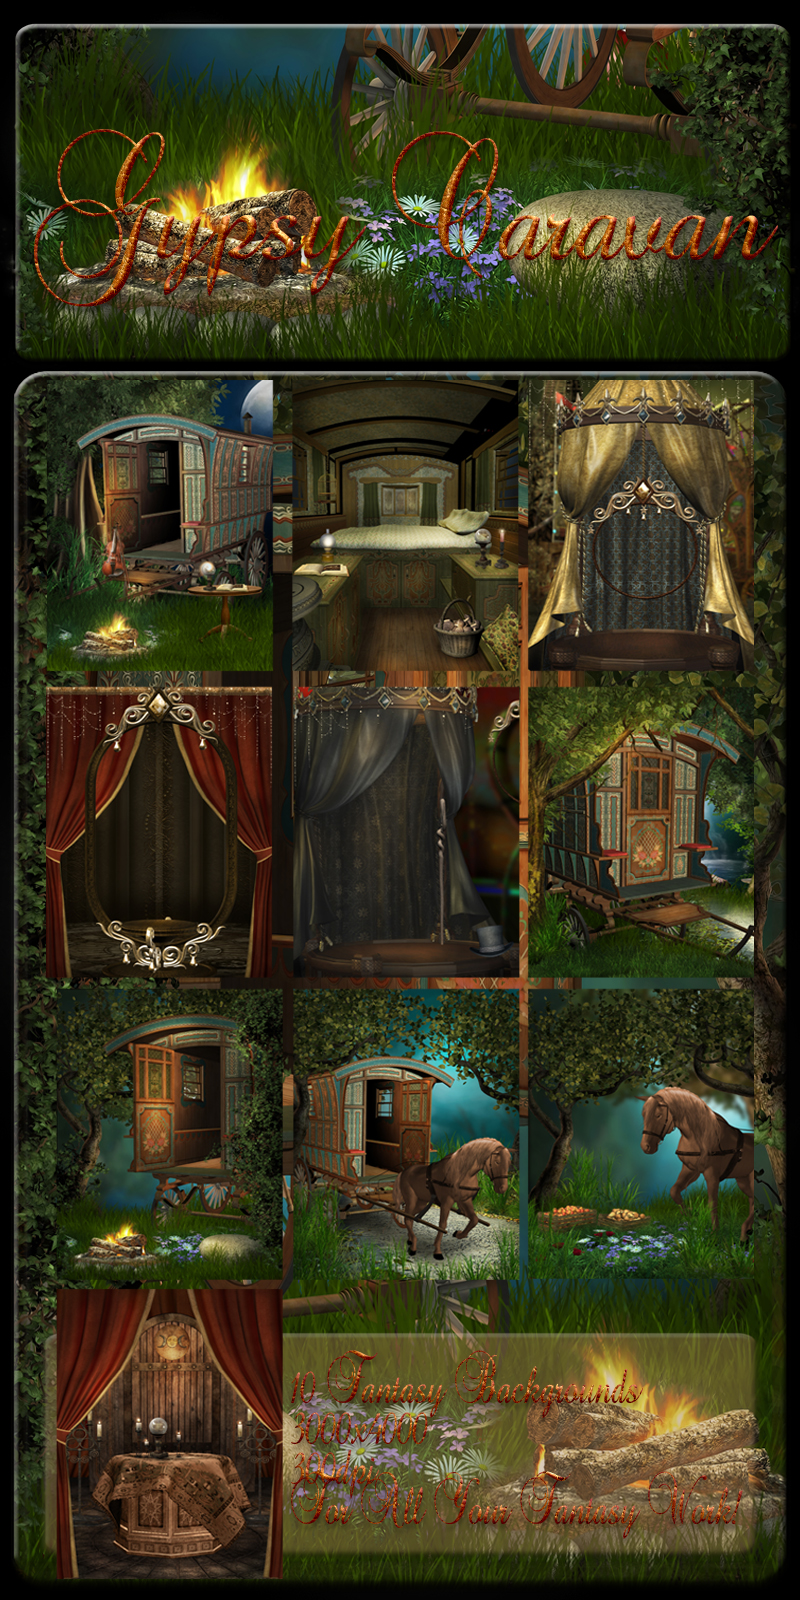 Gypsy Caravan backgrounds by moonchild-lj-stock on DeviantArt